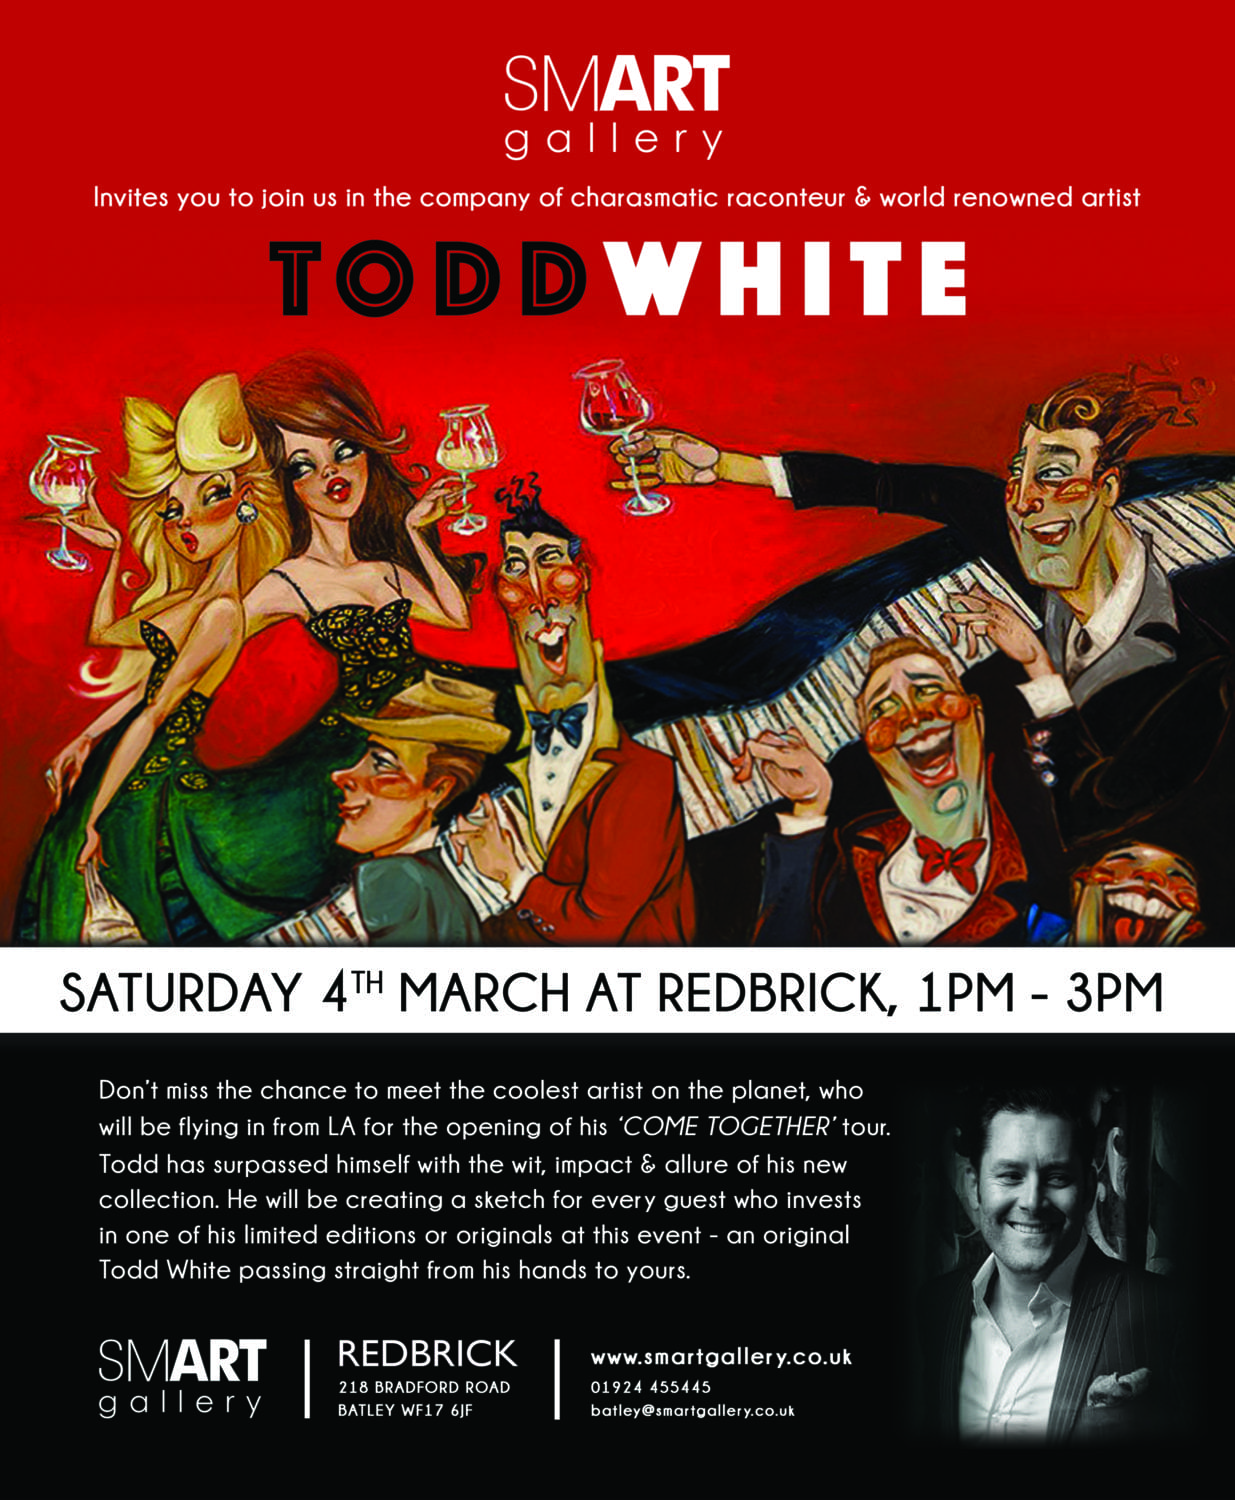 MEET THE COOLEST ARTIST ON THE PLANET, TODD WHITE – SATURDAY 4TH MARCH, 1PM – 3PM